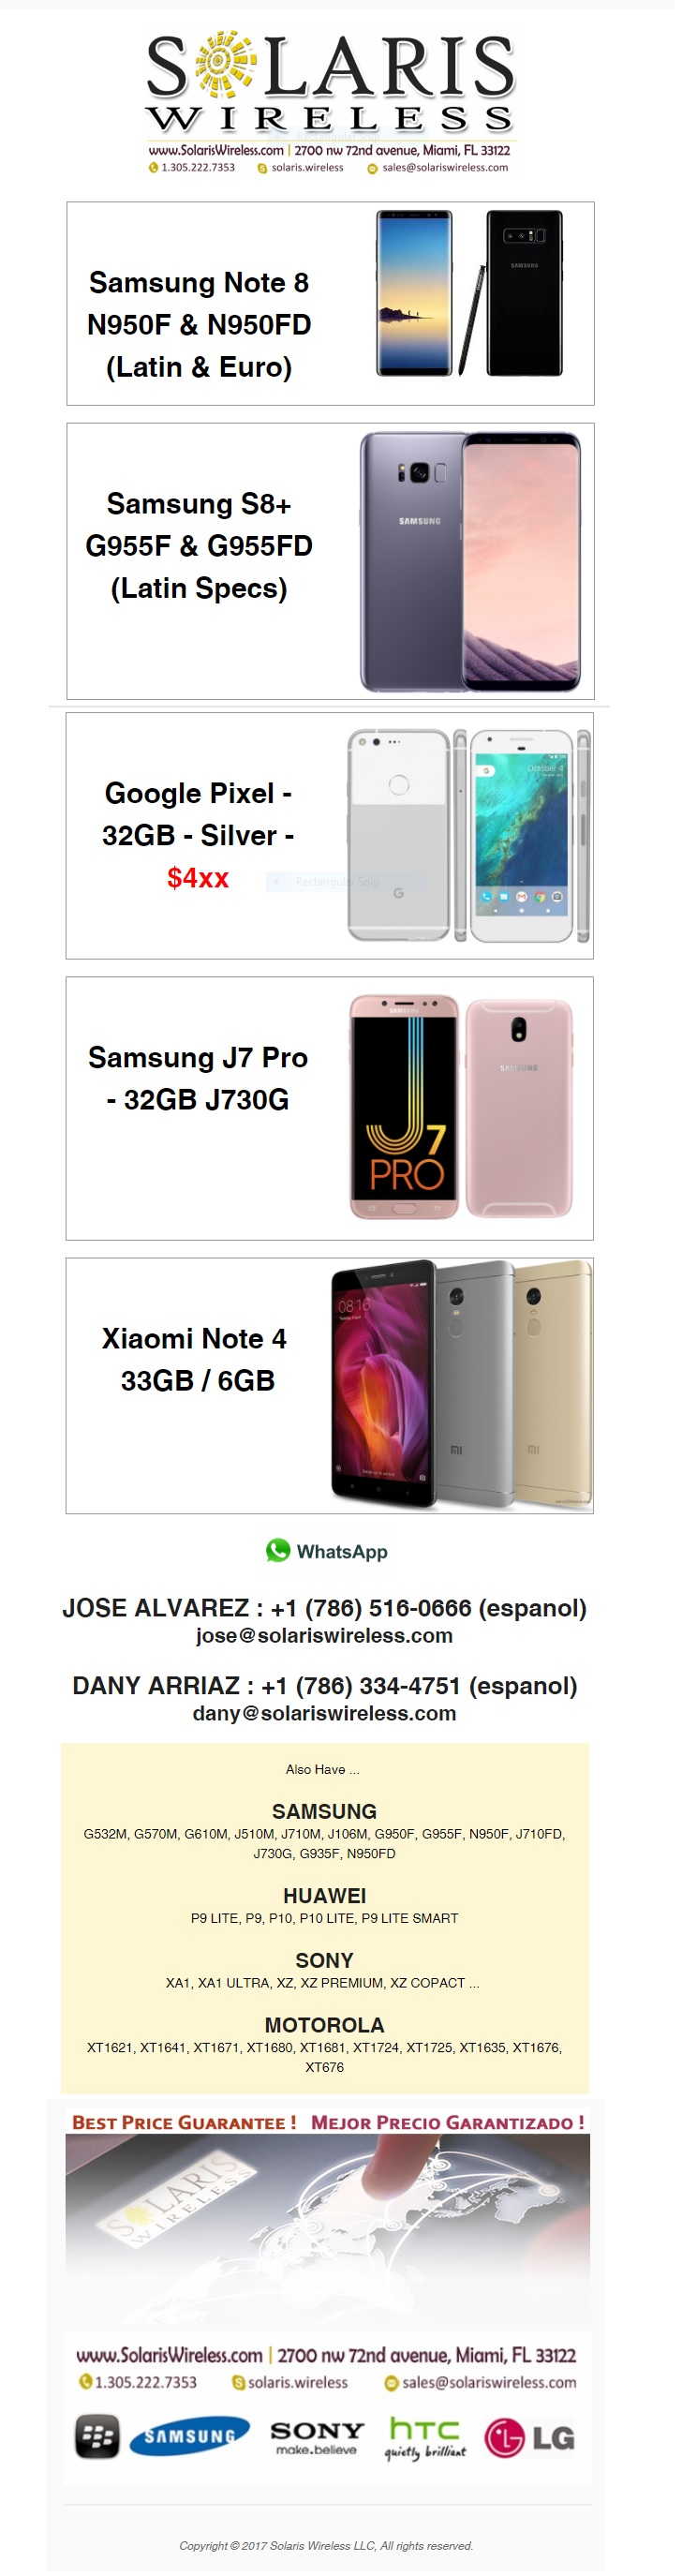 wholesale samsung, xiaomi, google pixel, cell phones